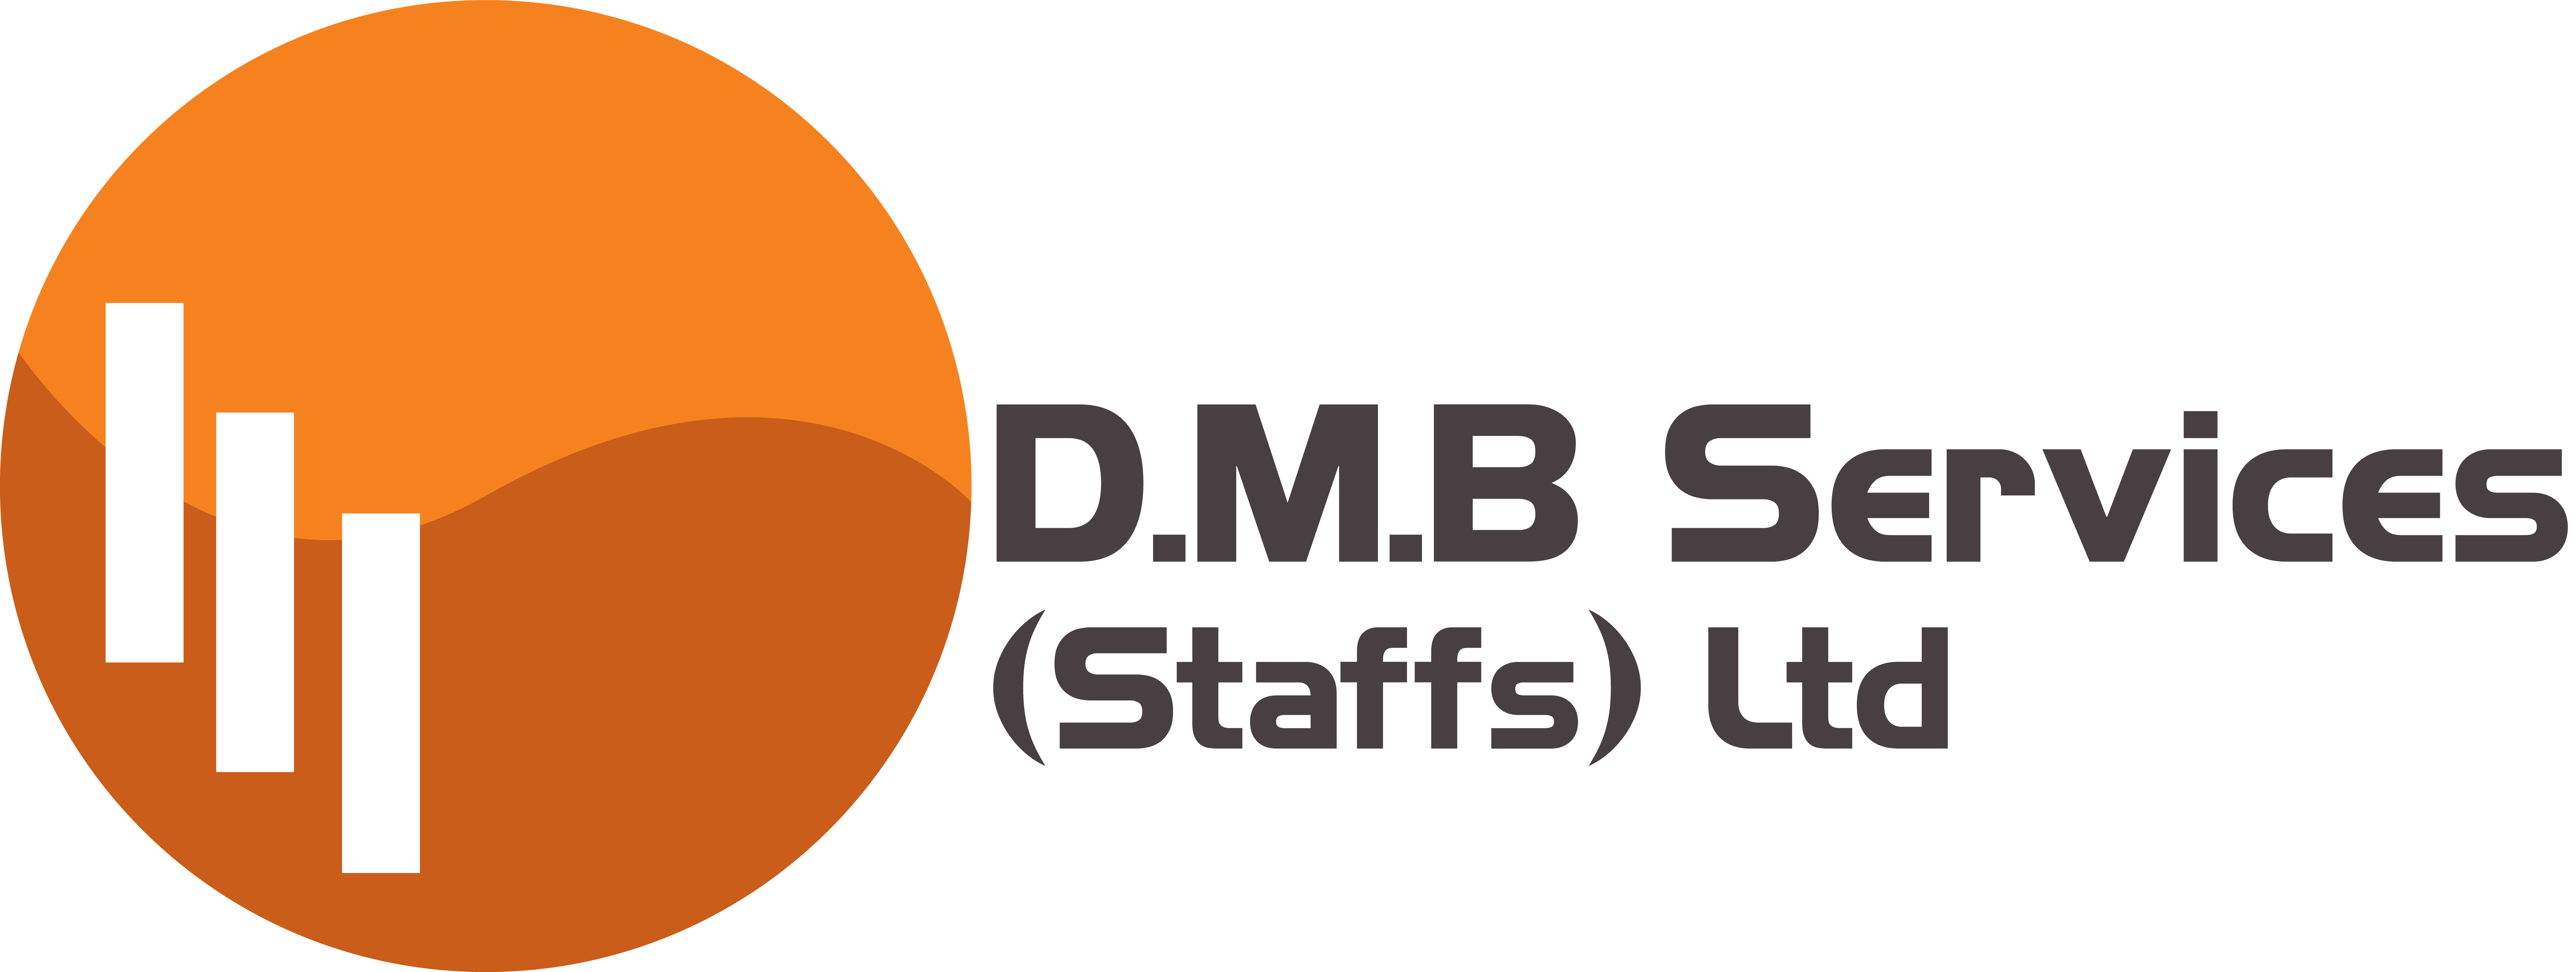 DMB Services Logo